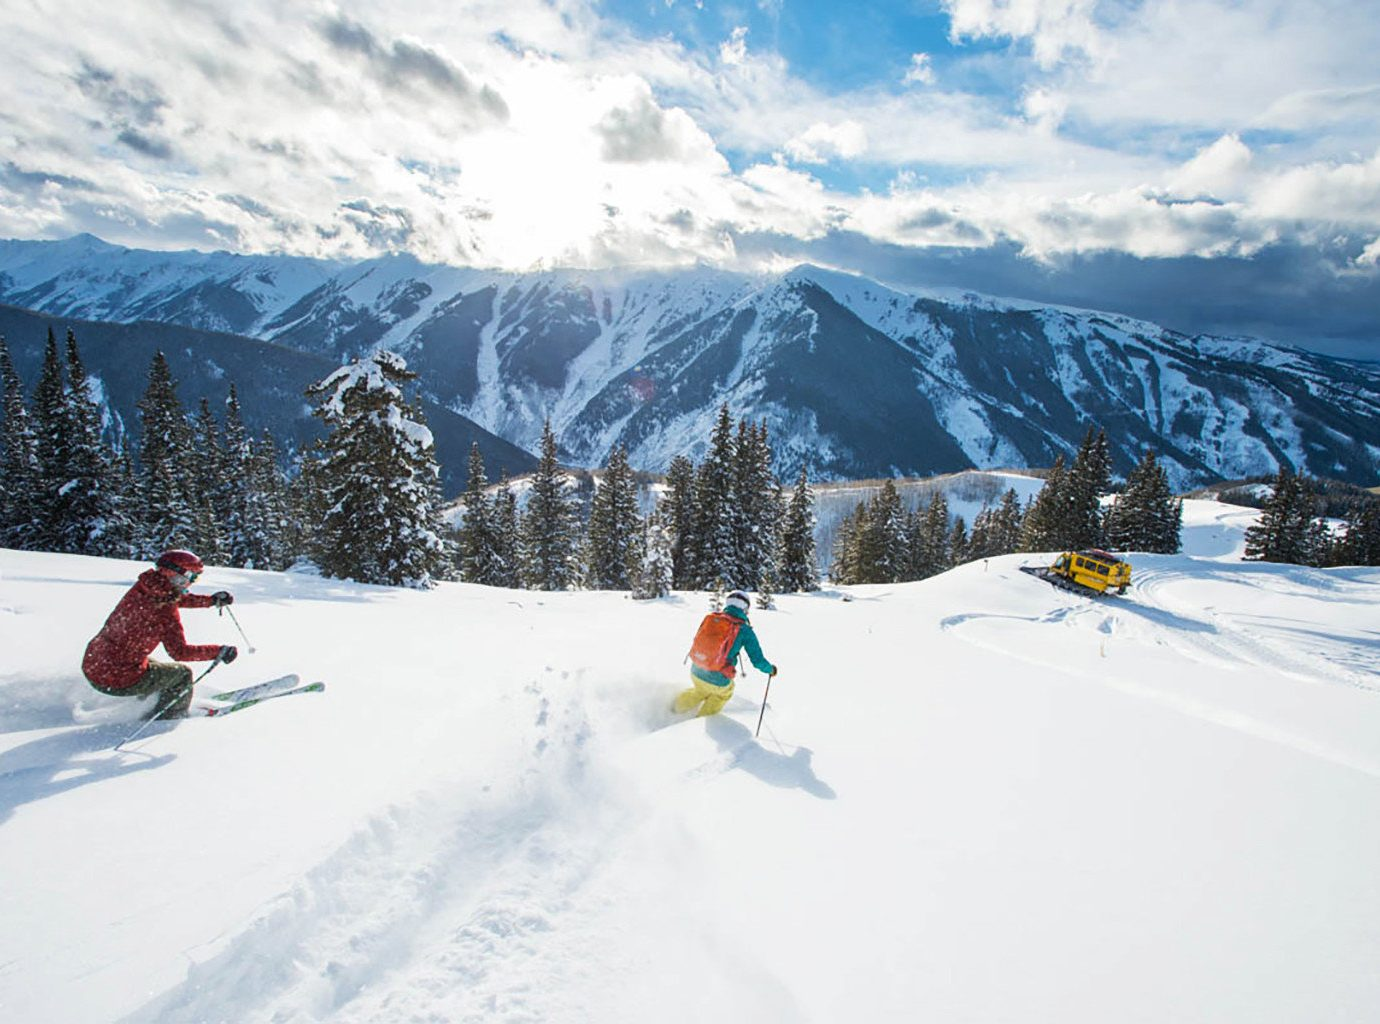 Celebs Hotels Trip Ideas snow sky outdoor mountain skiing Nature ice piste slope weather Winter geological phenomenon telemark skiing Ski covered winter sport ski equipment snowmobile season mountain range footwear alpine skiing sports ski slope people ski mountaineering vehicle ski touring sports equipment Resort downhill nordic skiing snowboarding